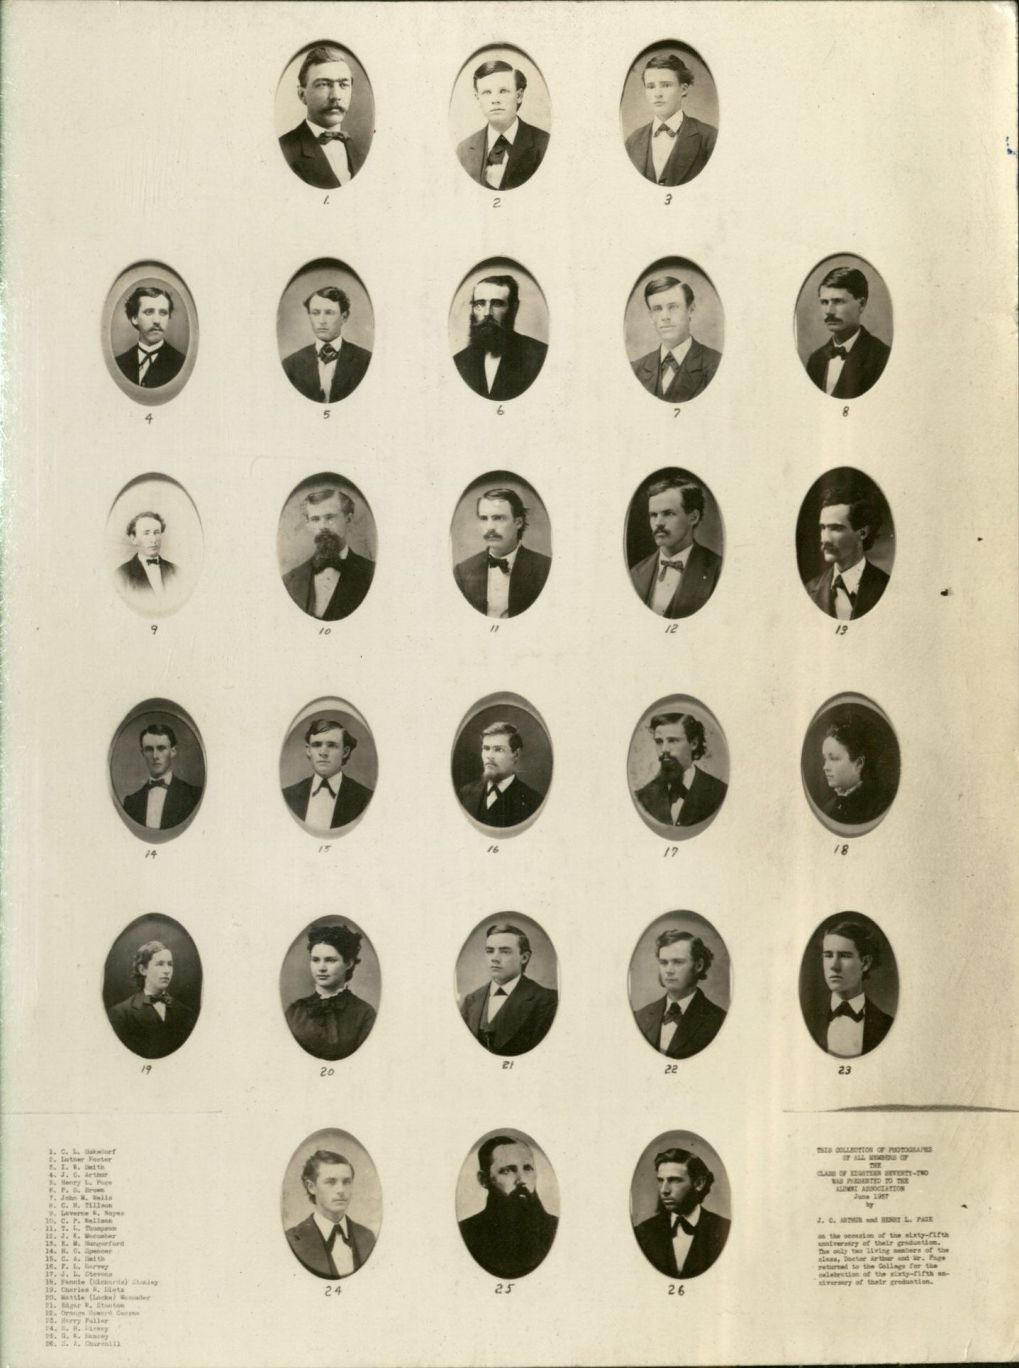 Individual portraits of 26 members of Iowa State Class of 1872, 24 men and 2 women.